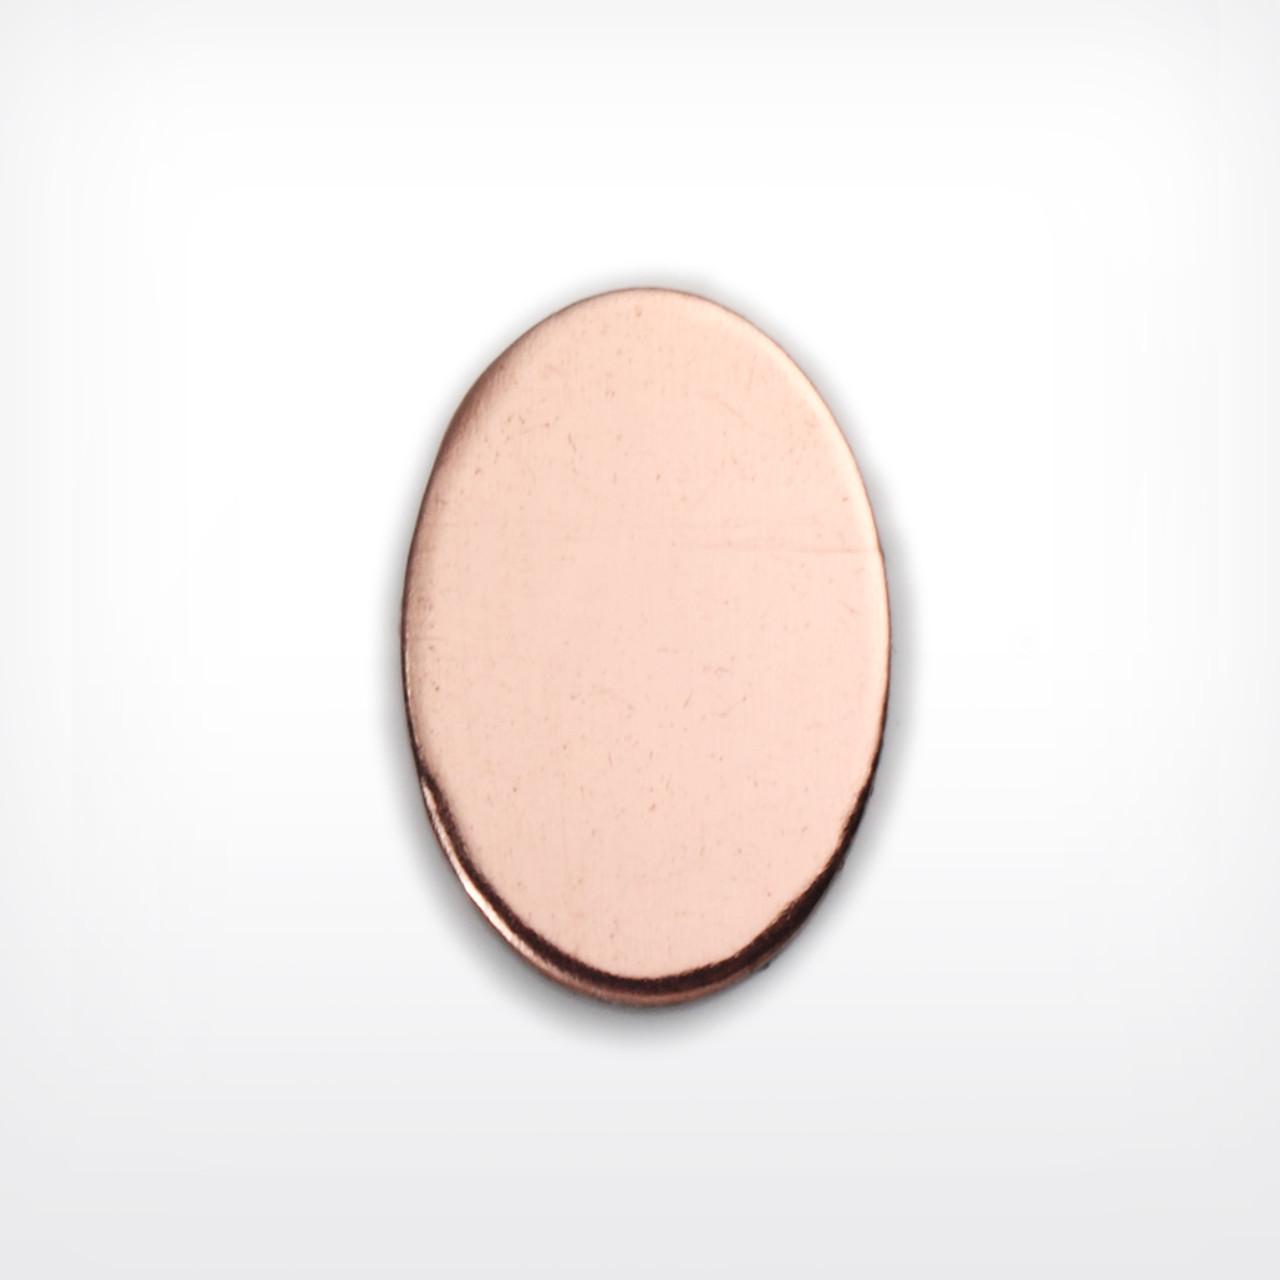 Copper Blank Oval Stamped Shape for Enamelling & Other Crafts